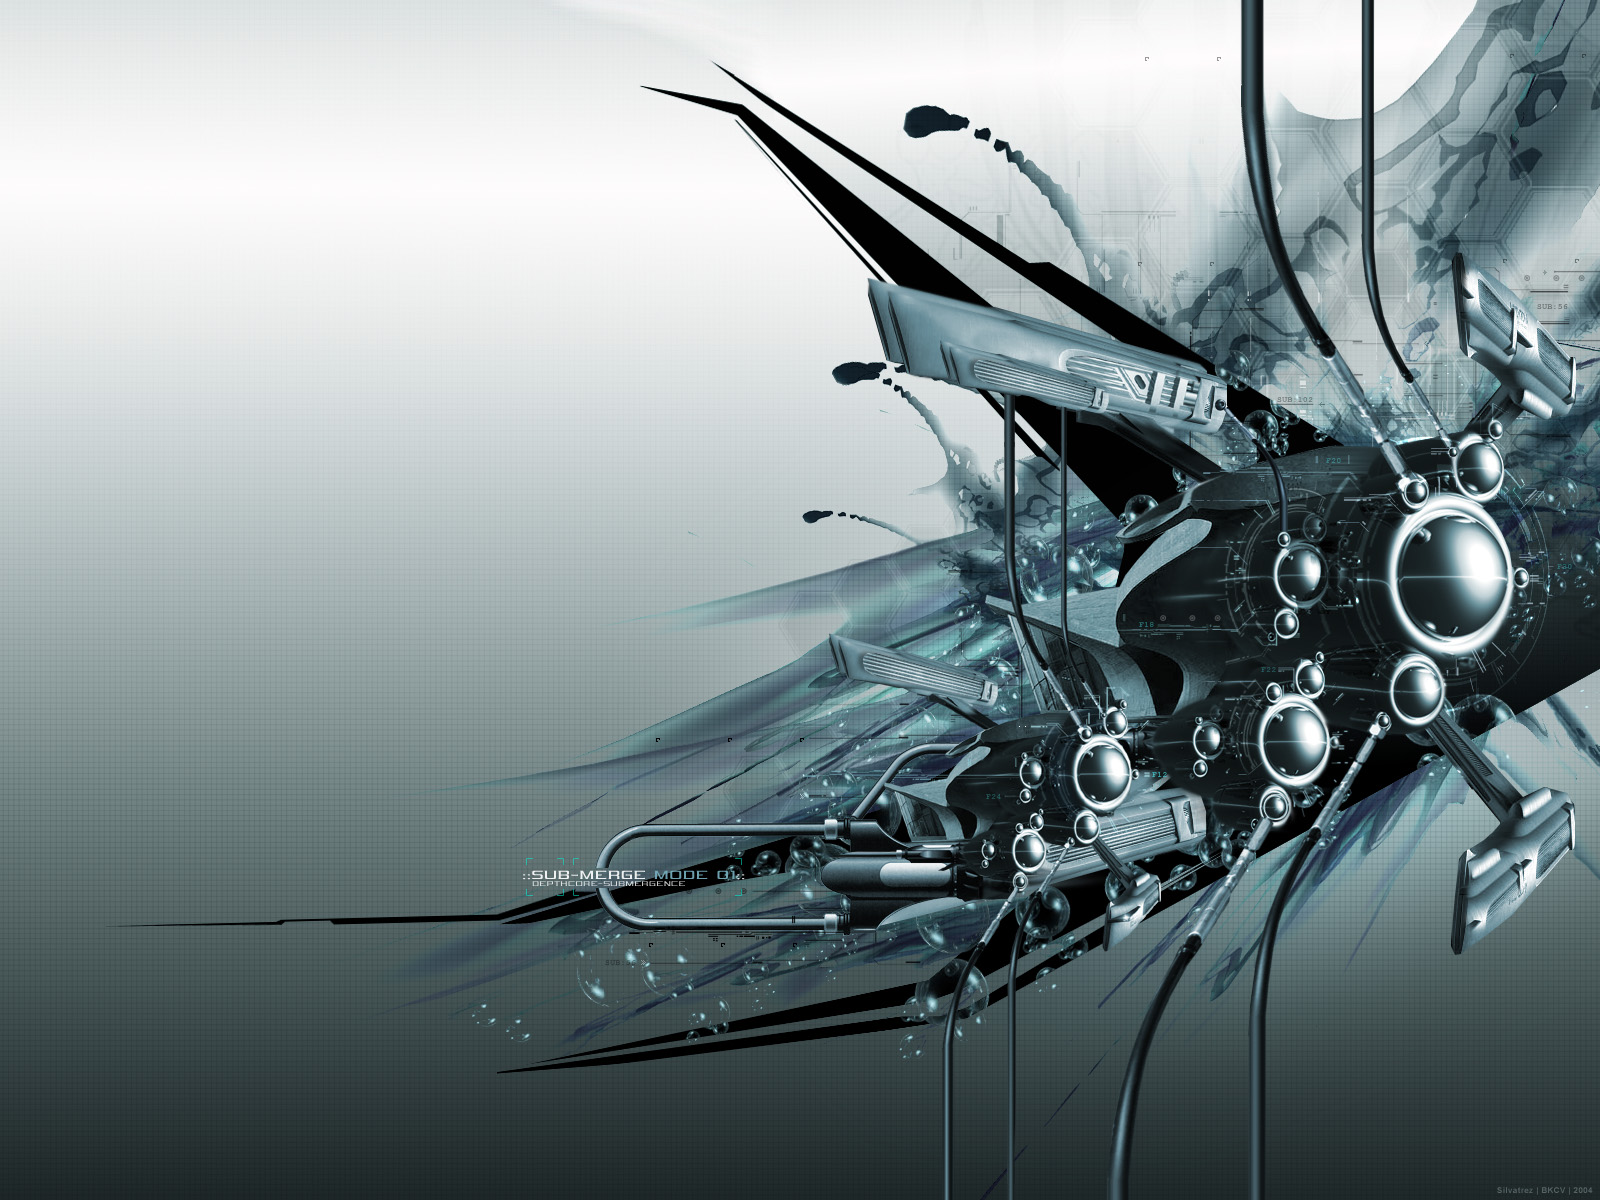 http://2.bp.blogspot.com/-aNM3WBgv-5c/TdB_0va5Y8I/AAAAAAAAC1A/fuG3QOdwEtw/s1600/Abstract-Wallpaper-011.jpg